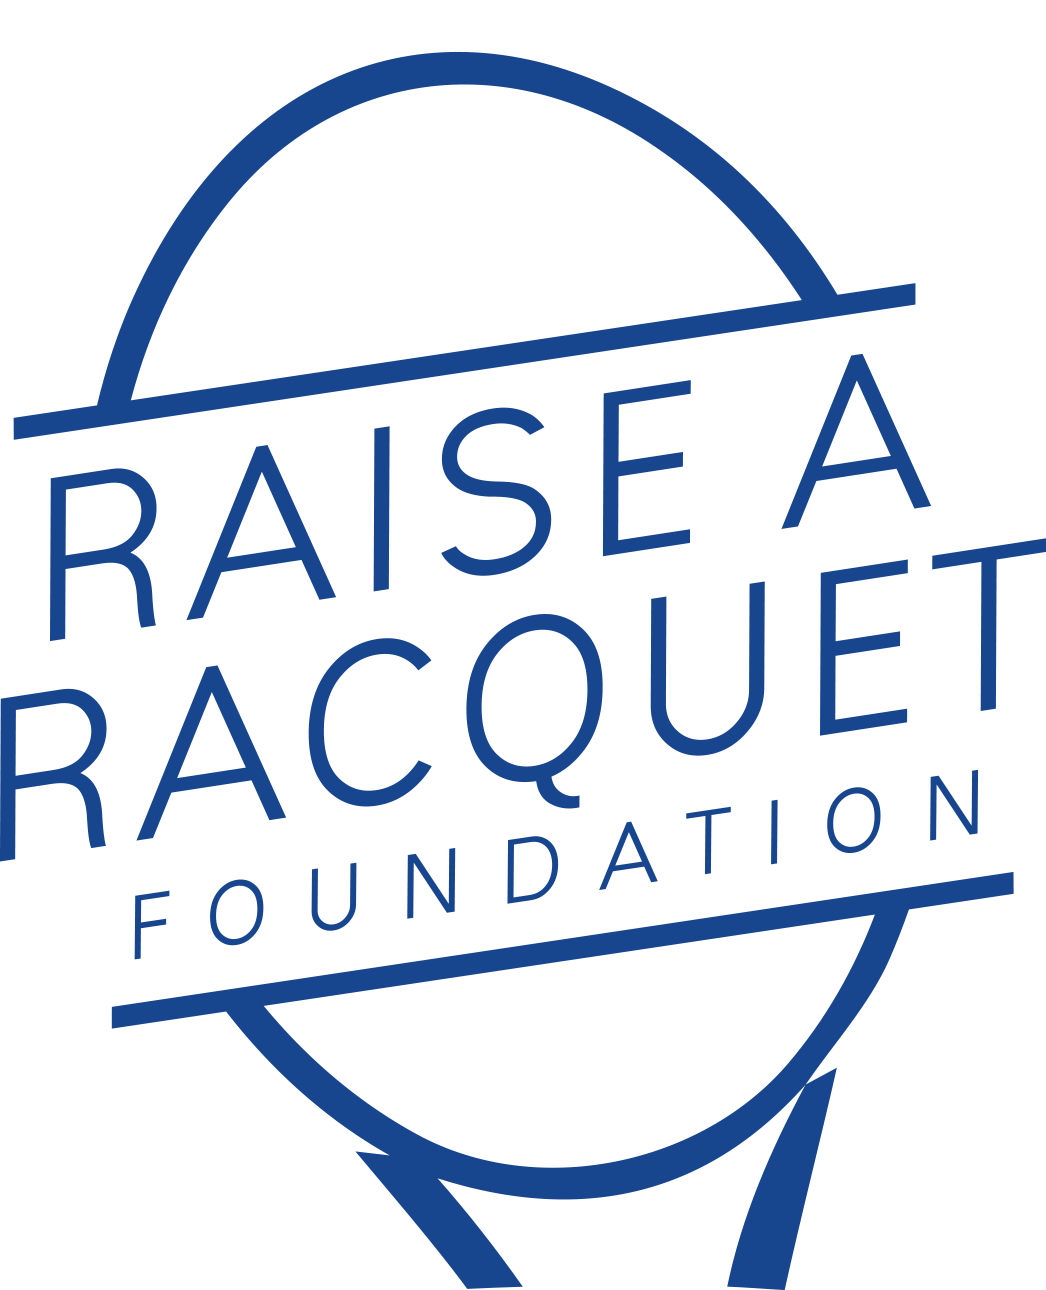 RaiseaRacquetFoundation_Logo_286_181107